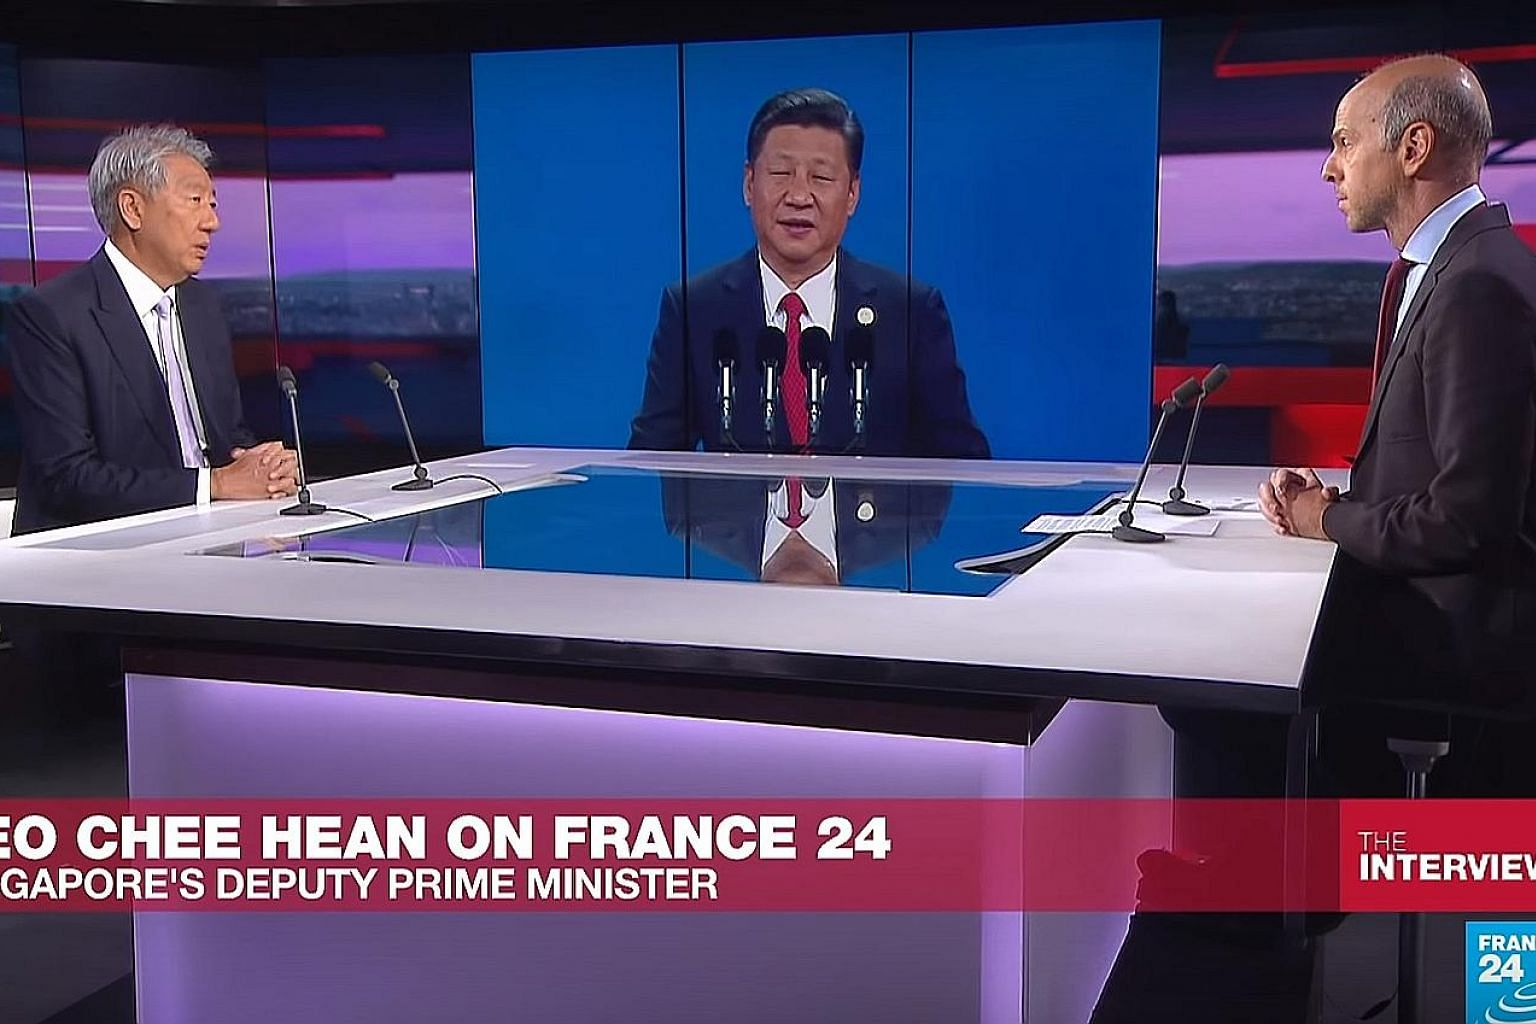 Deputy Prime Minister Teo Chee Hean being interviewed by TV news outlet France 24 on Wednesday. He was asked about the US-China trade row, among other topics.